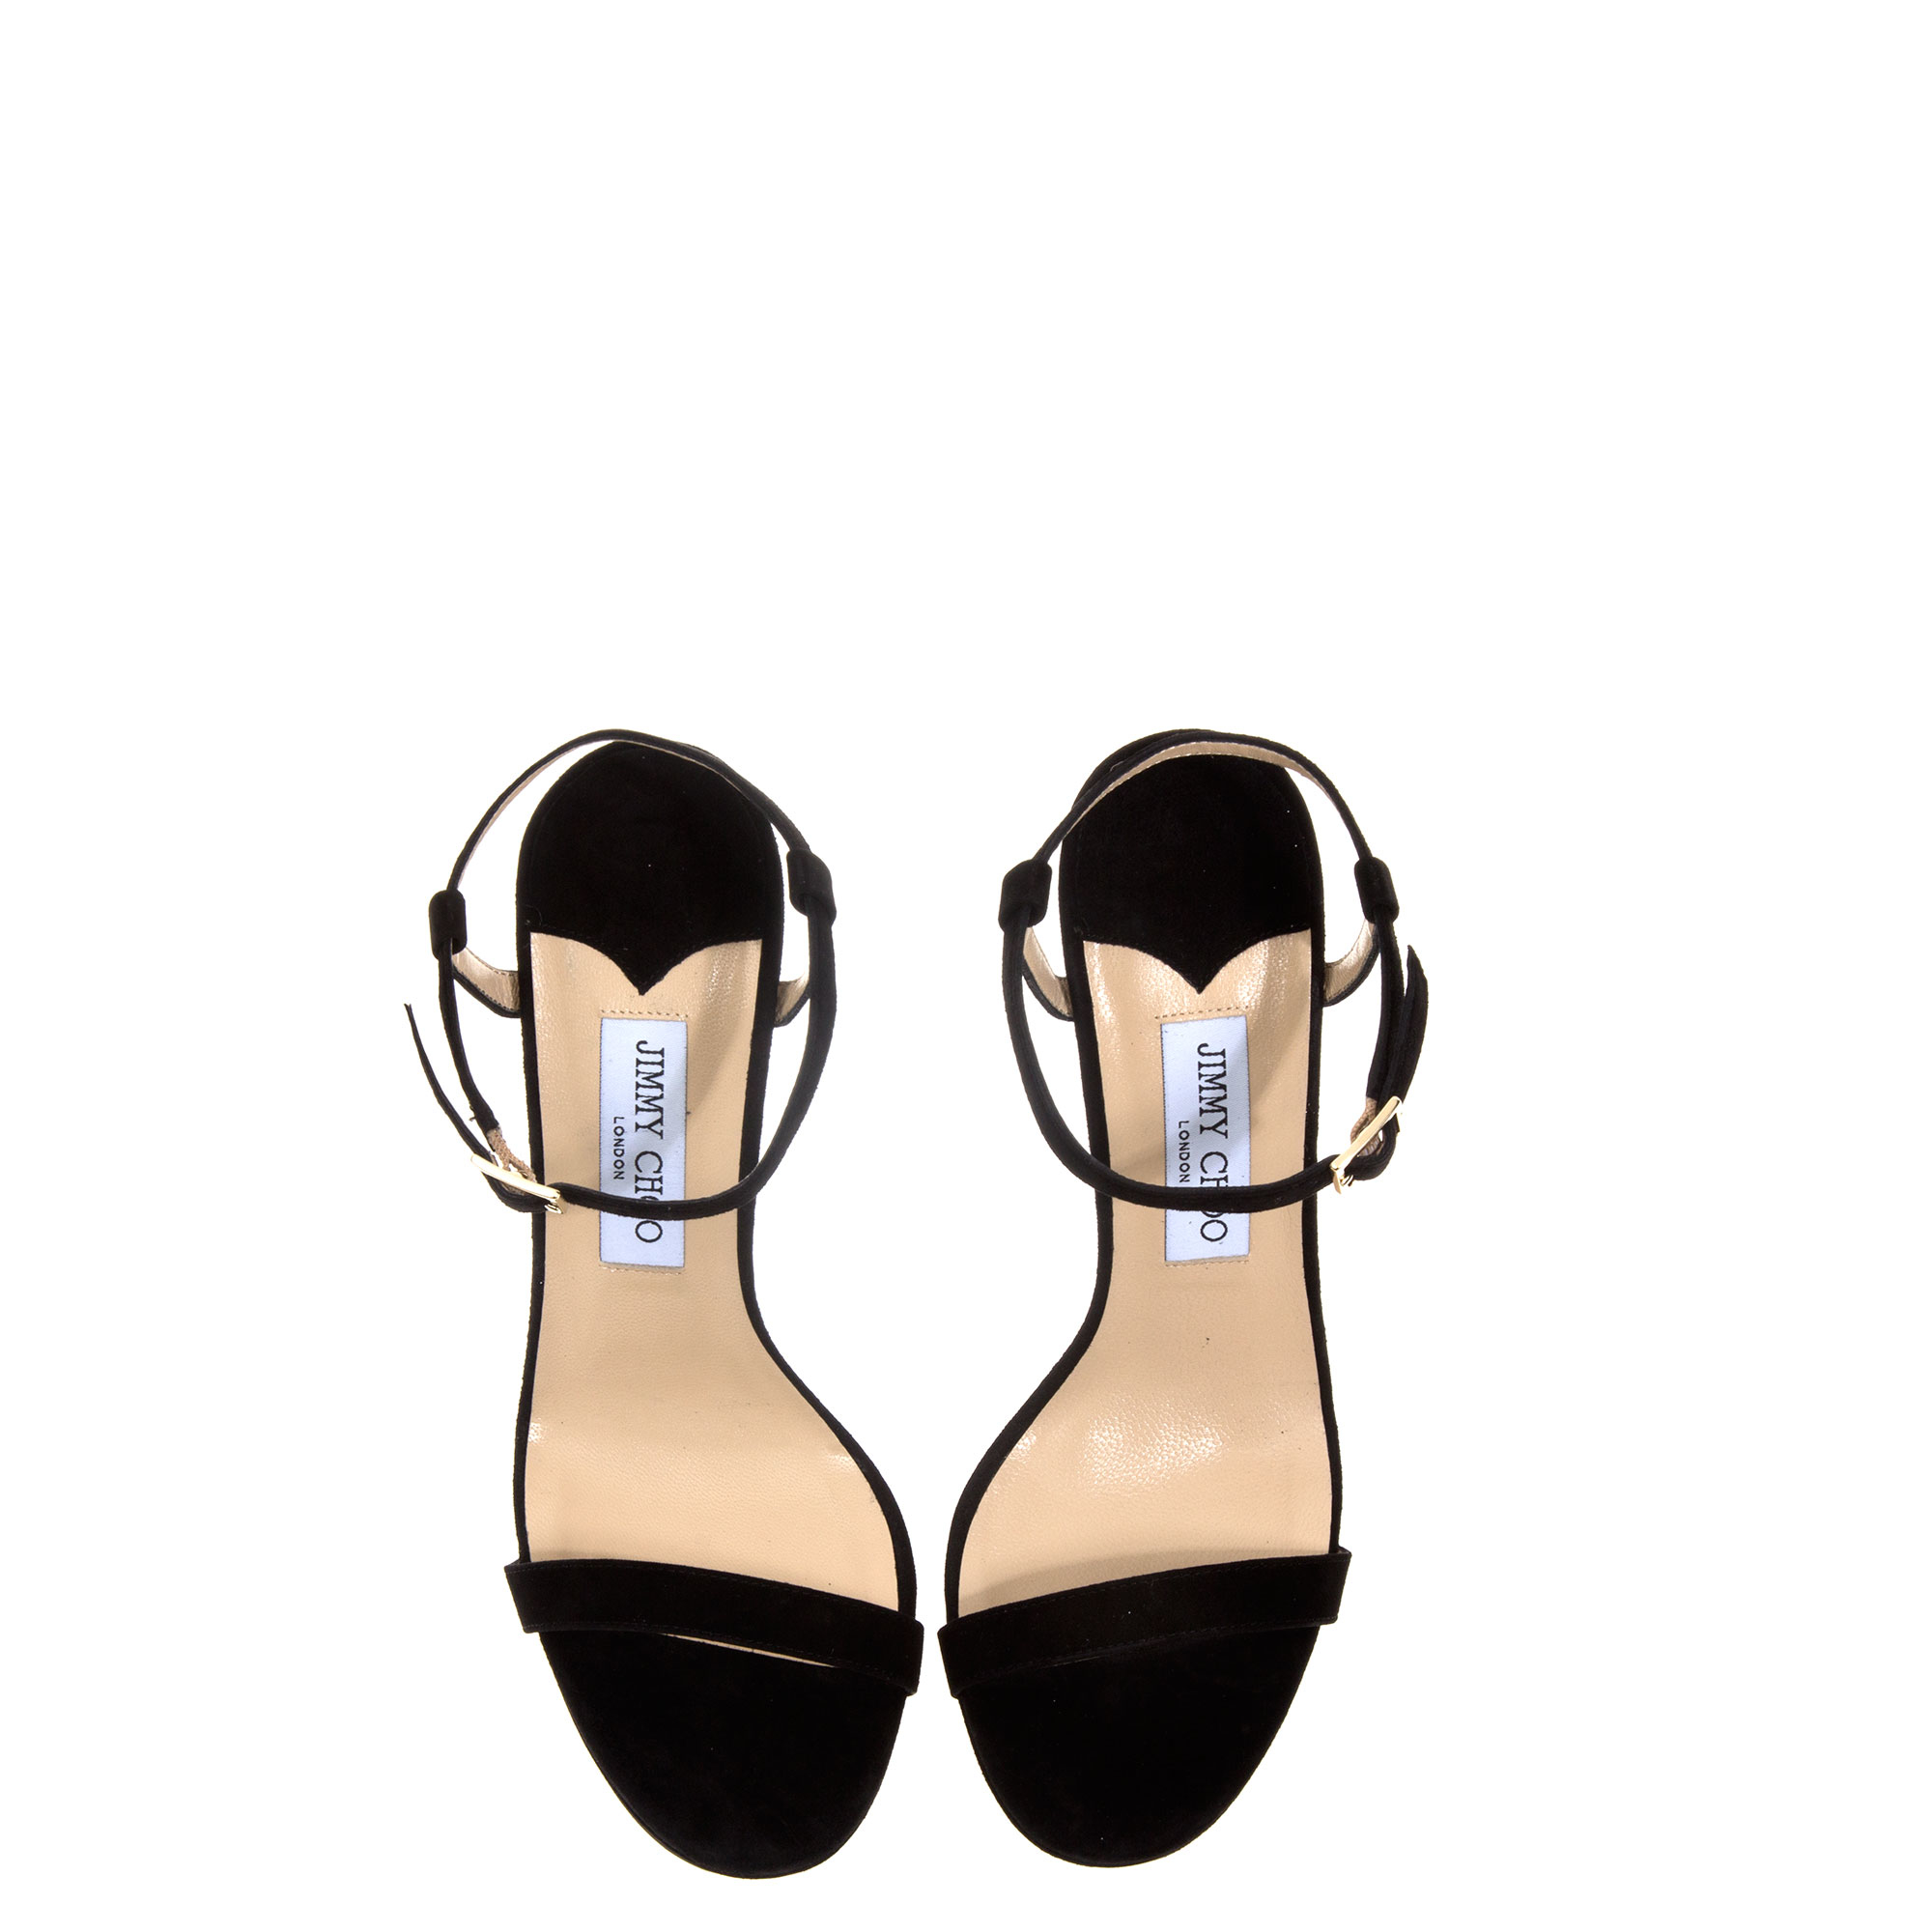 jimmy choo claudette shoes in black lyst